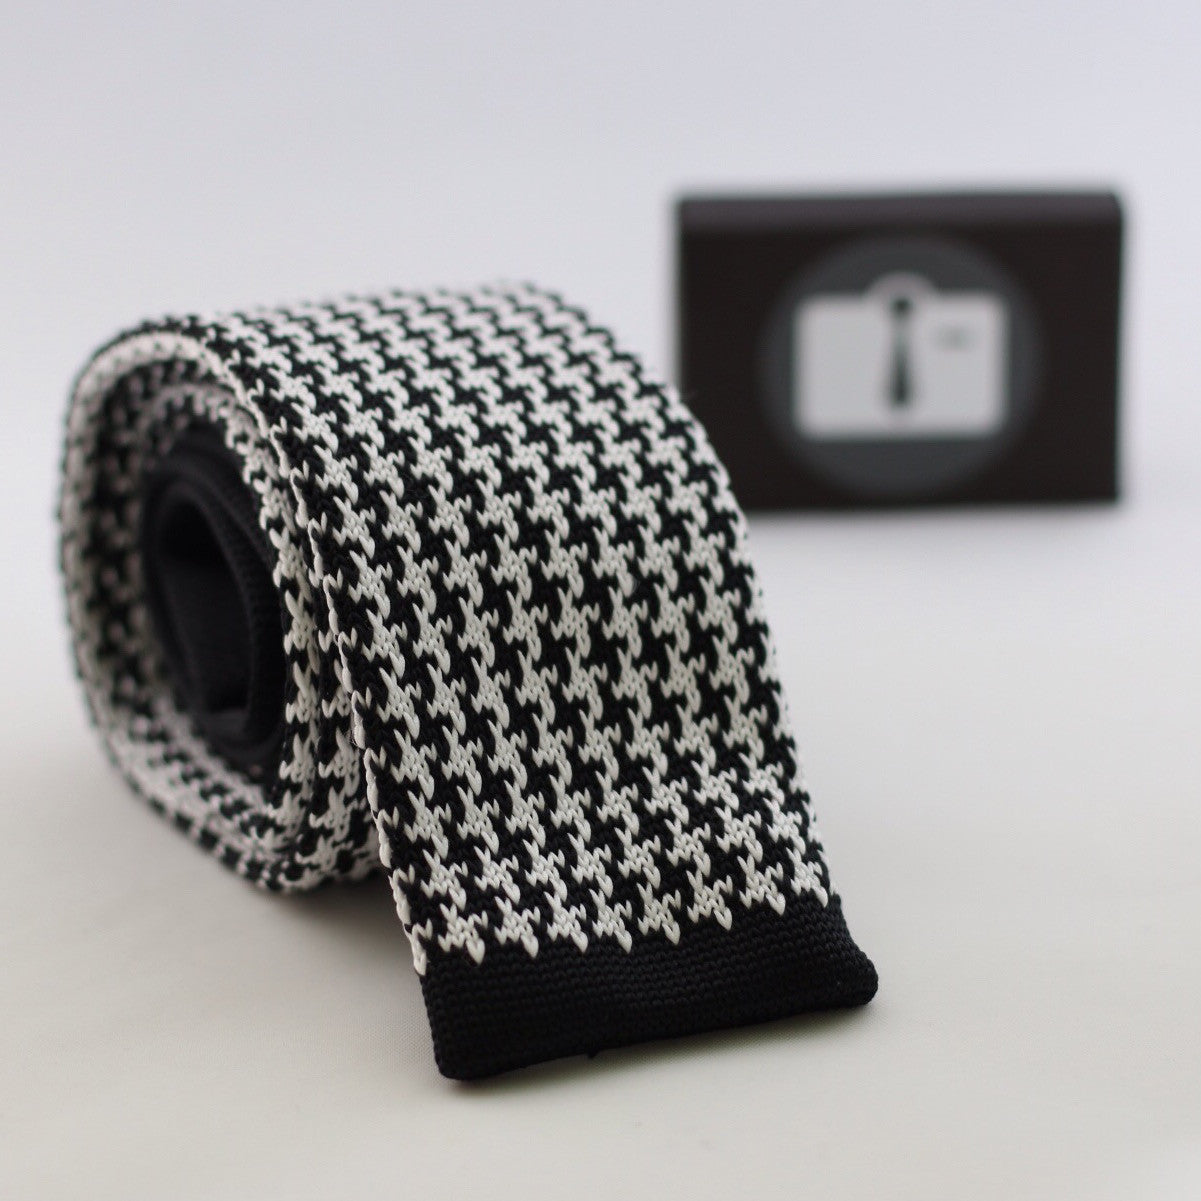 Black Knitted Tie With White Houndstooth Pattern | Outfit Toolkit